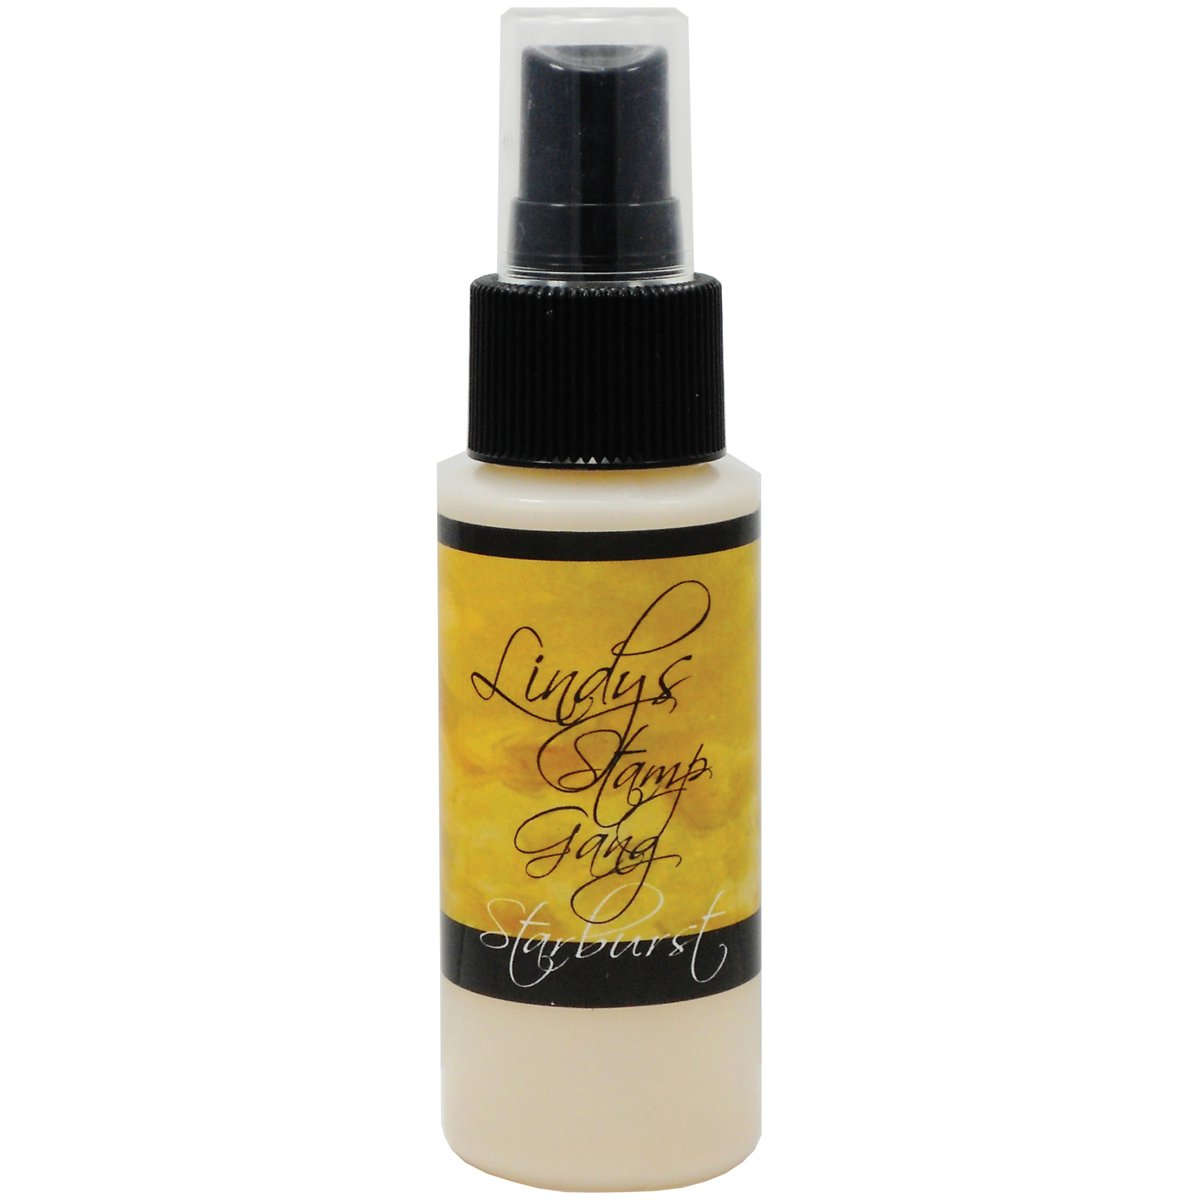 Lindy's Stamp Gang Starburst Spray, 2-Ounce, Glory of The Seas Gold